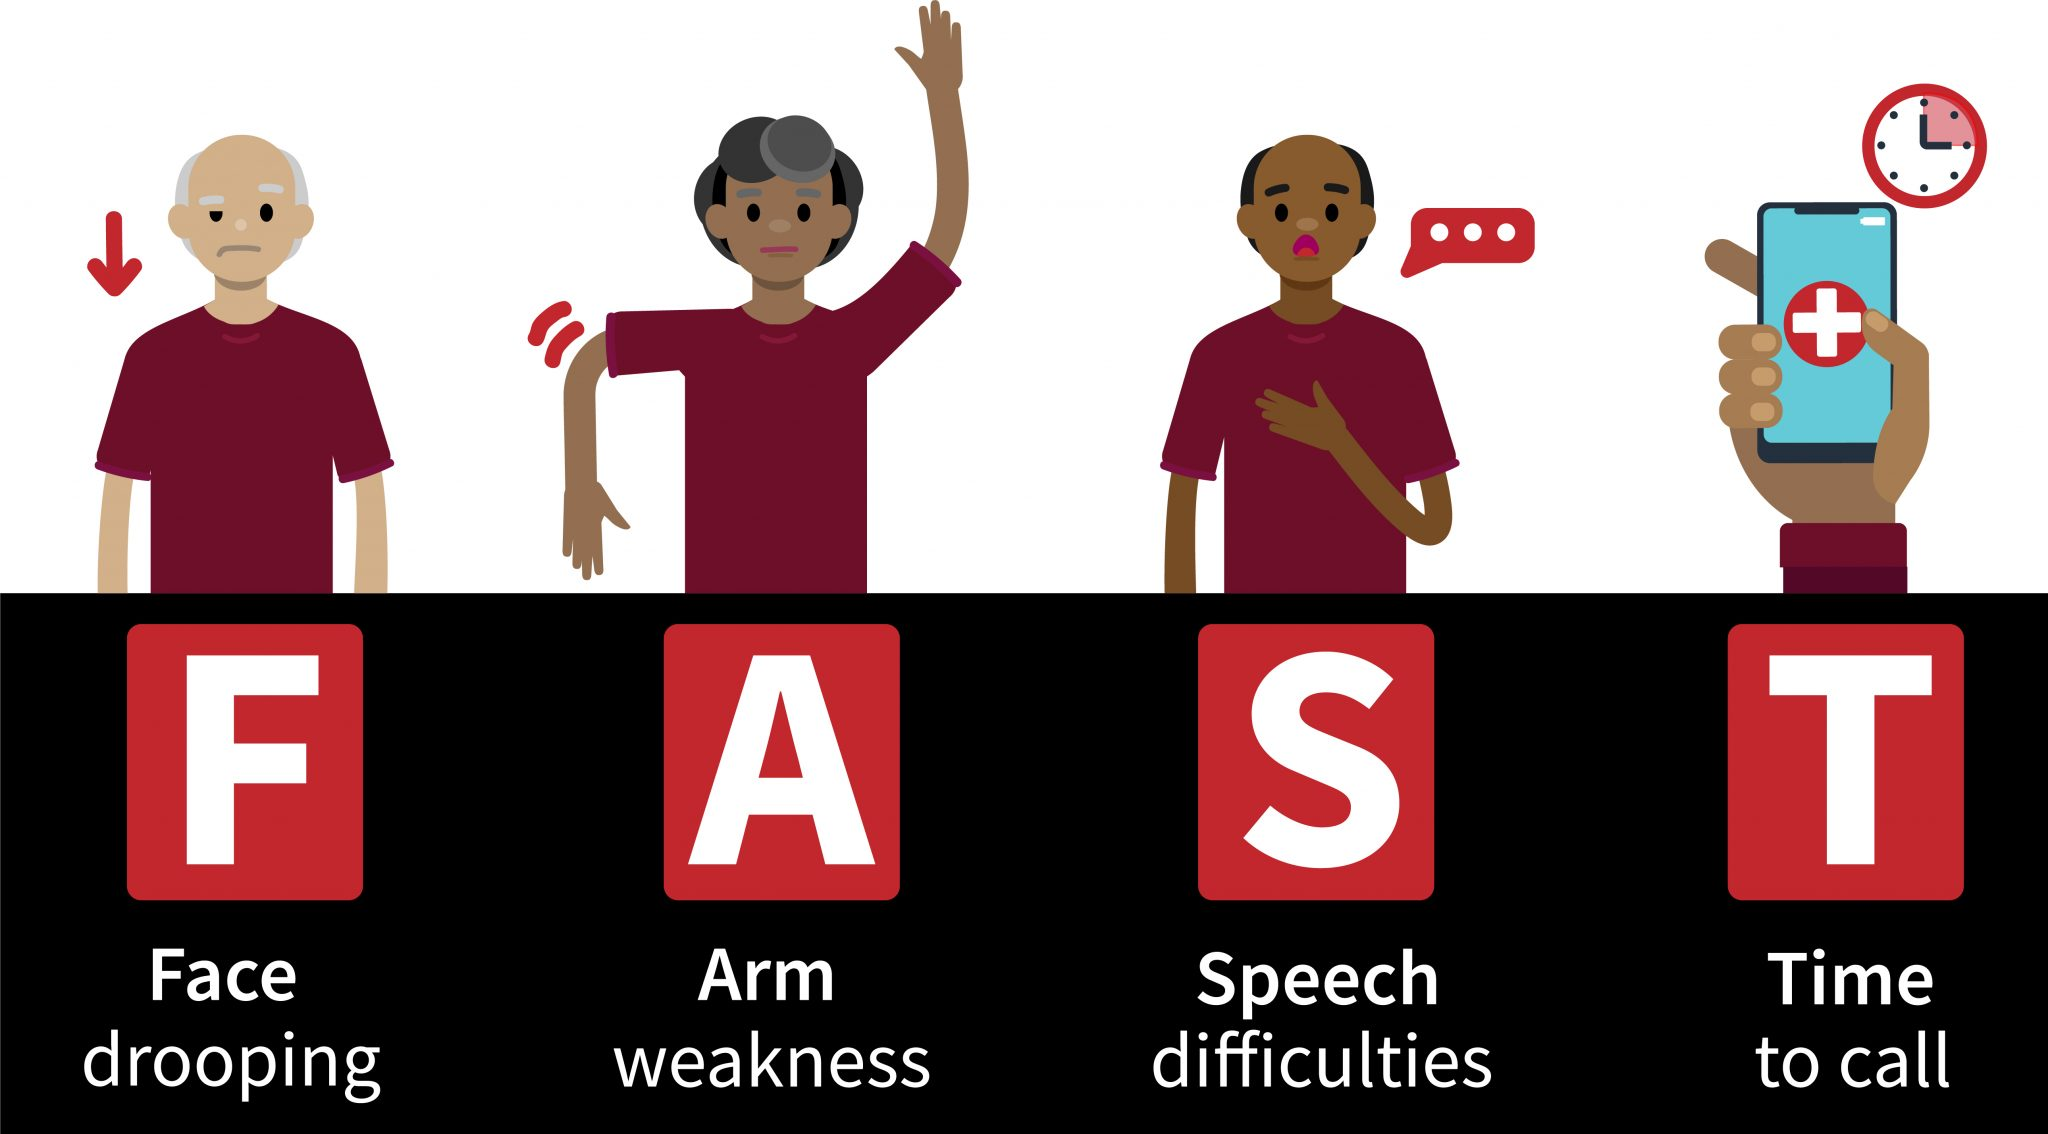 Illustration describing the three warning signs of stroke. FAST= Face Drooping, Arm Weakness, Speech difficulties, Time to call 911.